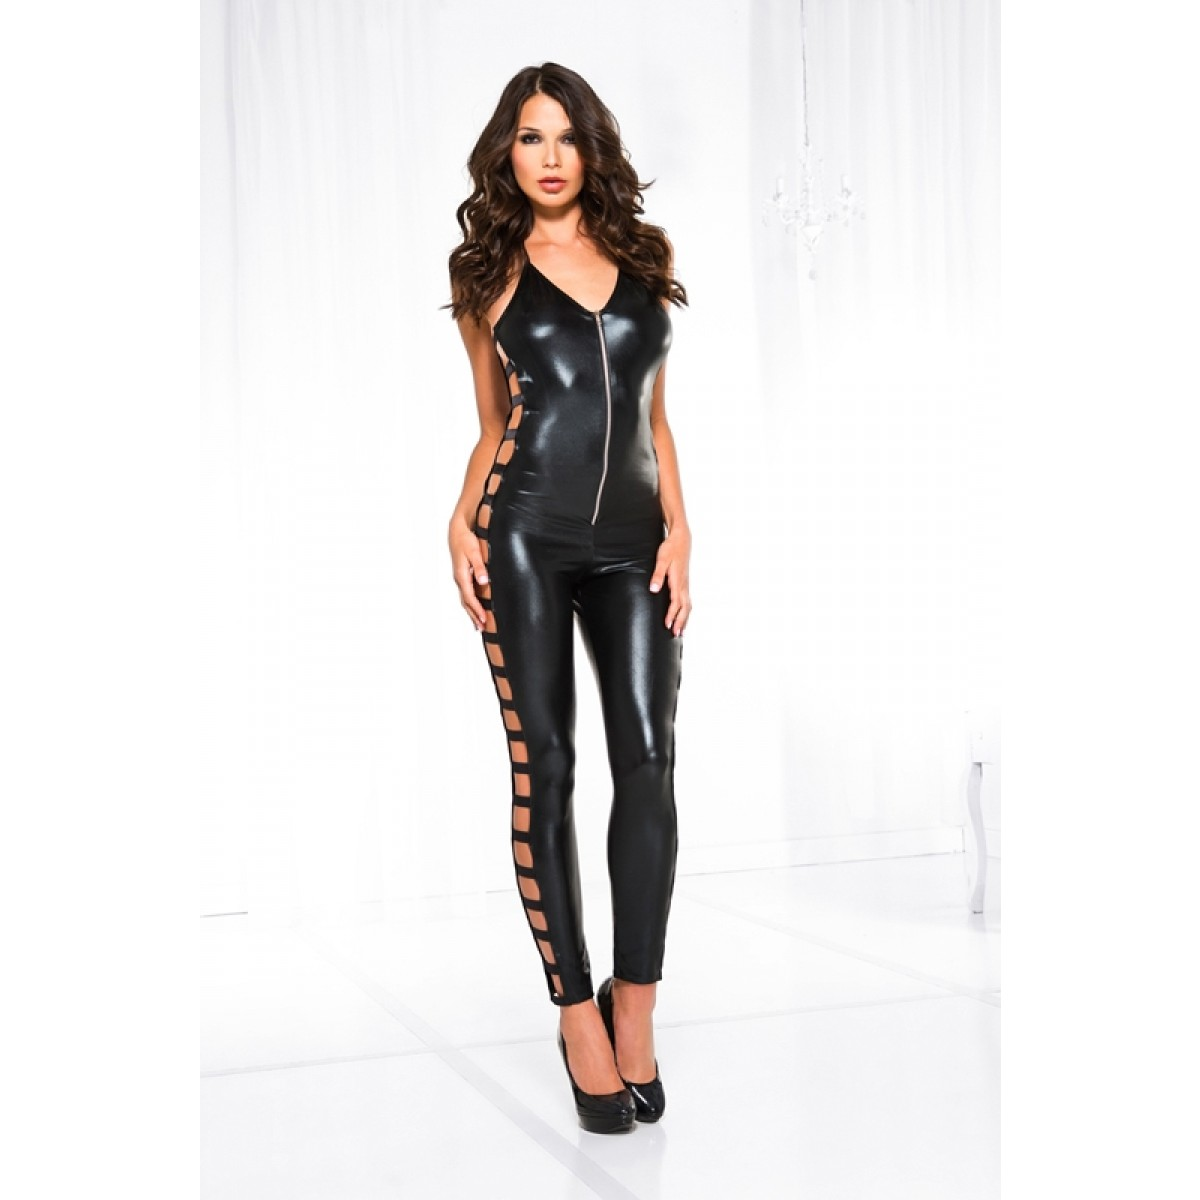 WETLOOK BODYSUIT